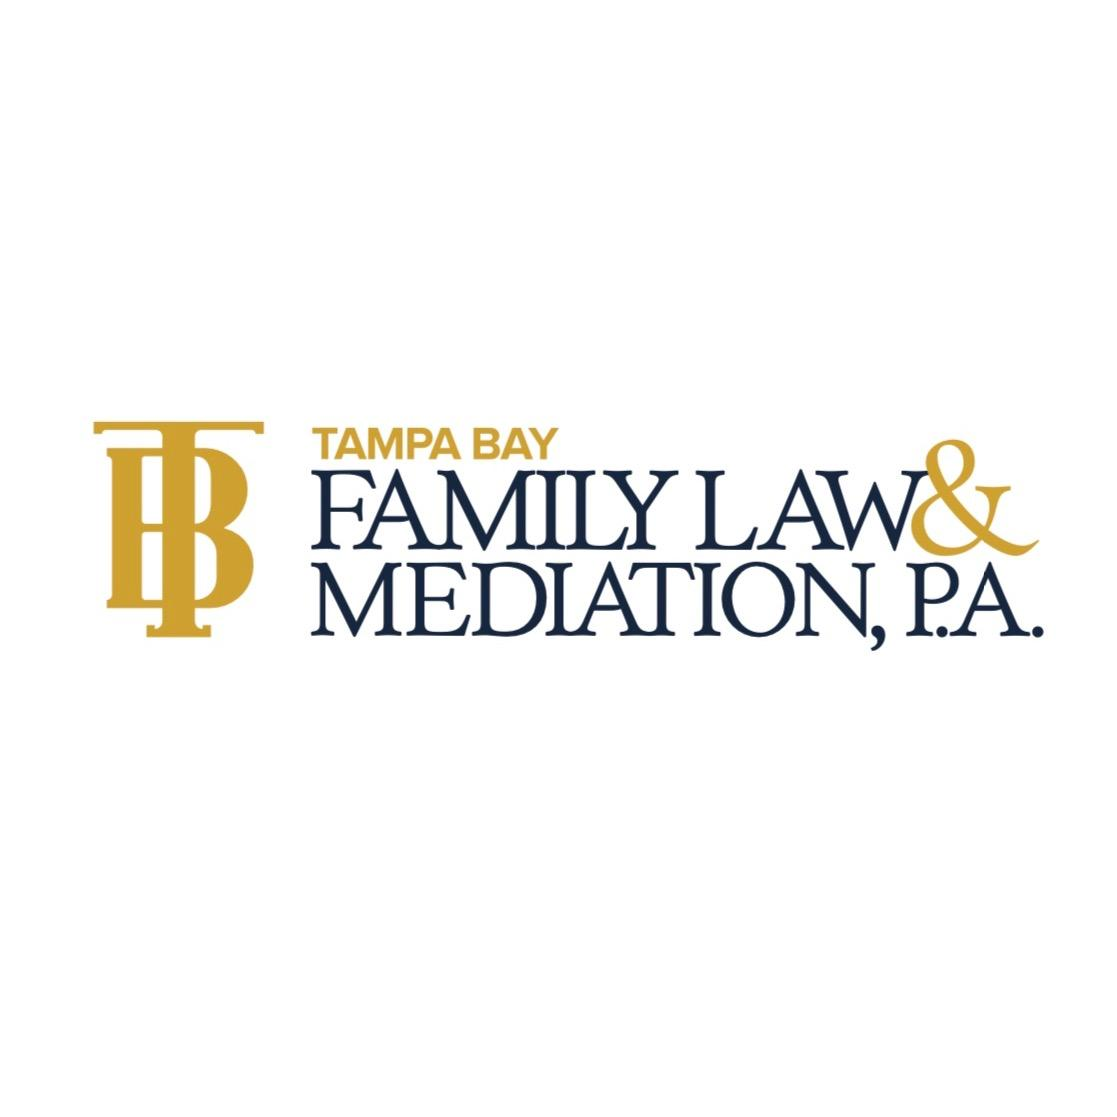 Tampa Bay Family Law & Mediation, P.A. - Tampa, FL 33606 - (813)251-6222 | ShowMeLocal.com